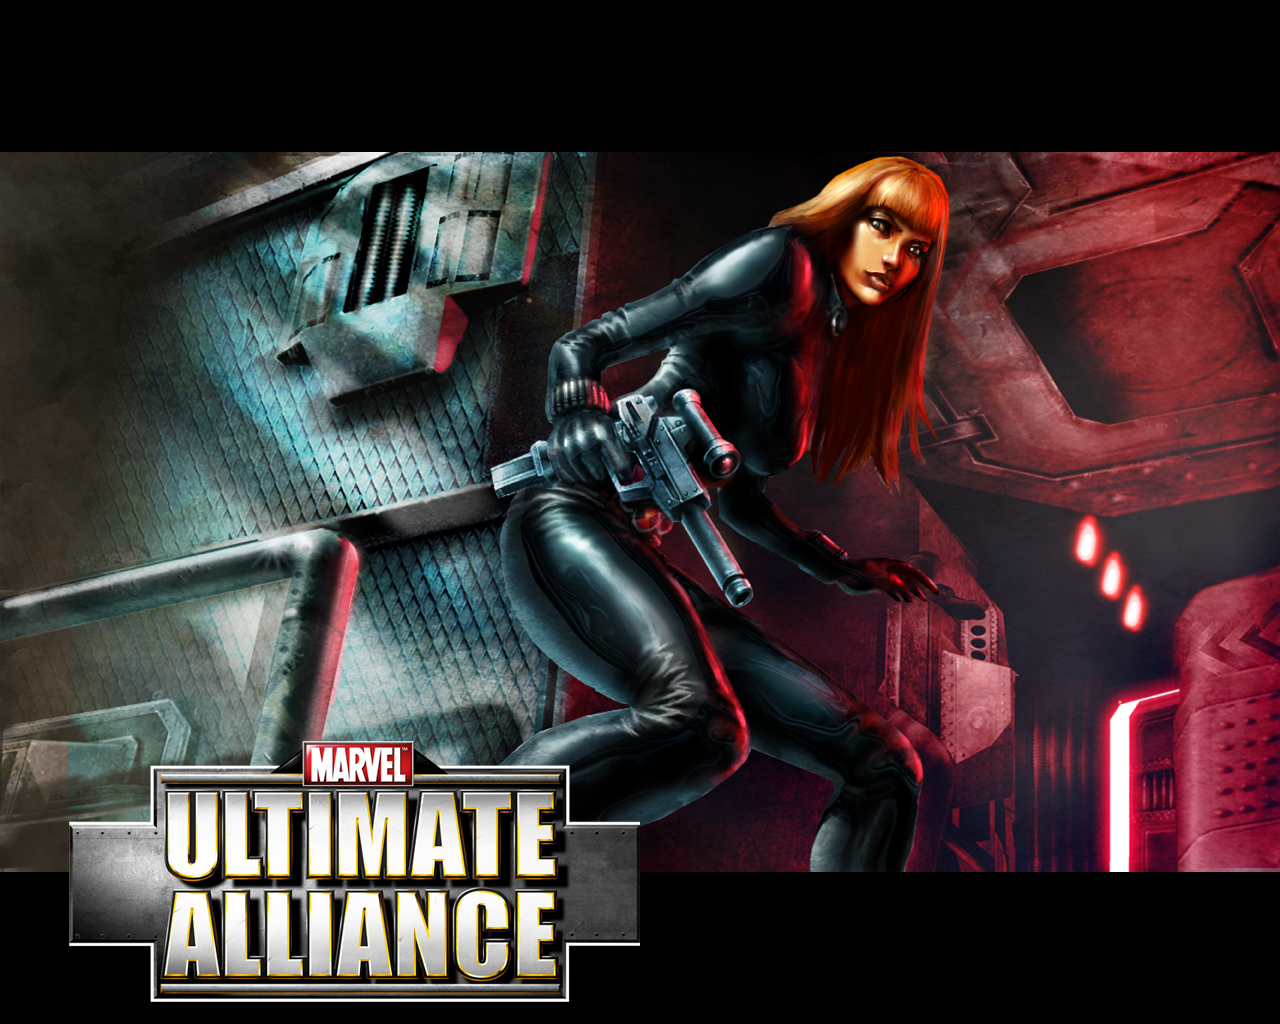 black widow marvel ultimate alliance wallpaper black widow wallpaper 1280x1024